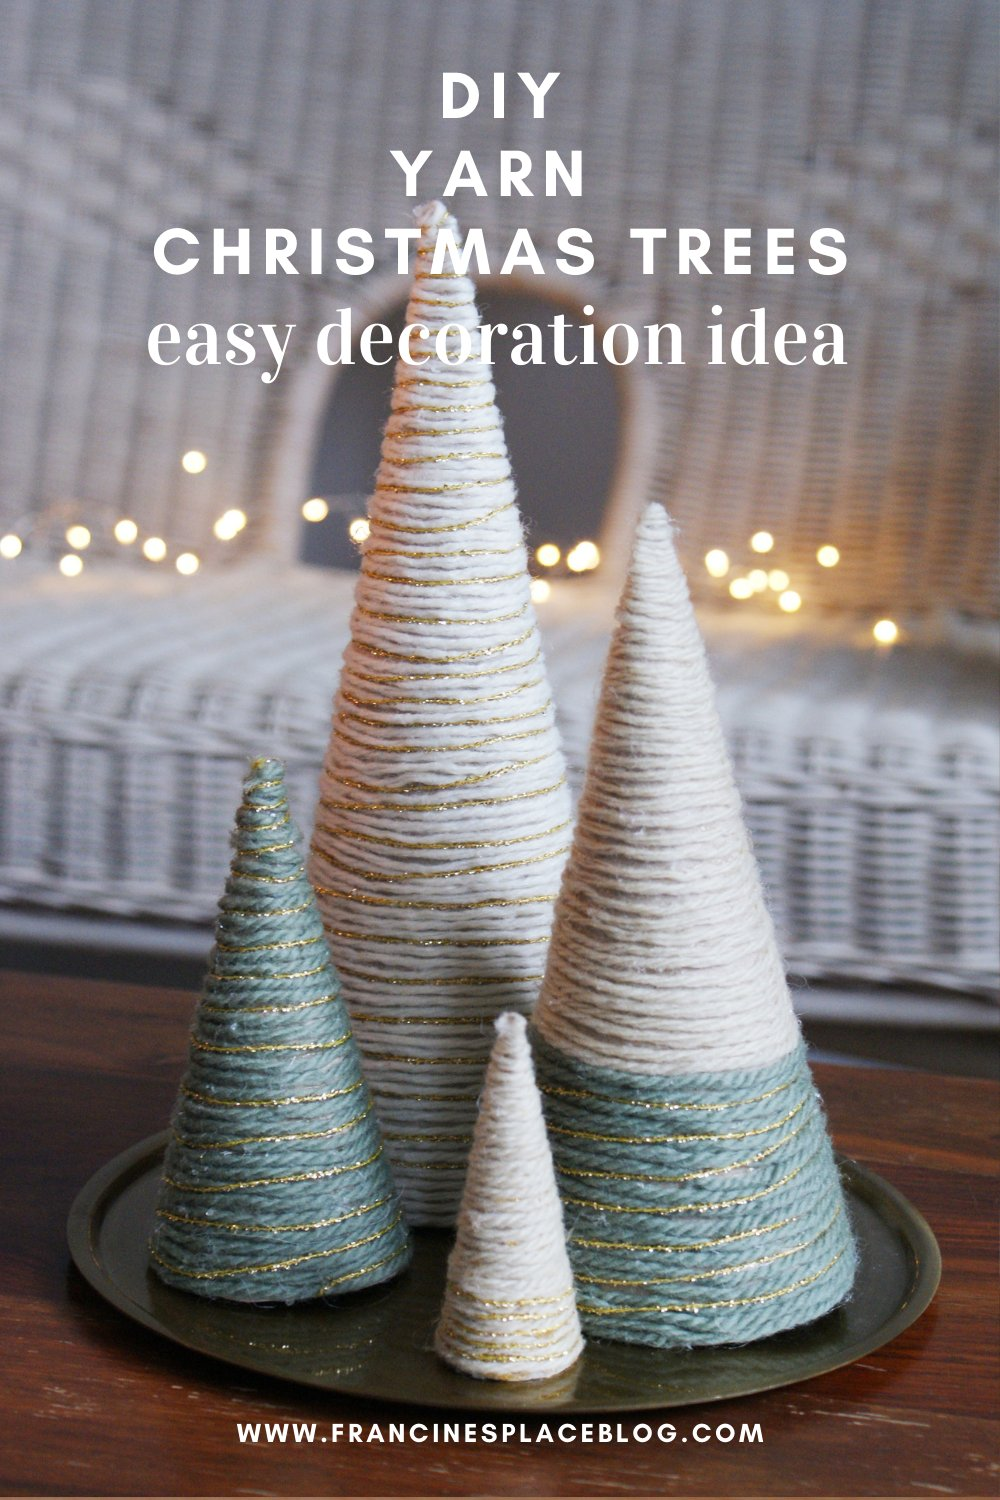 diy yarn christmas tree wool wrapped easy quick simple last minute decoration idea francinesplaceblog pinterest 2